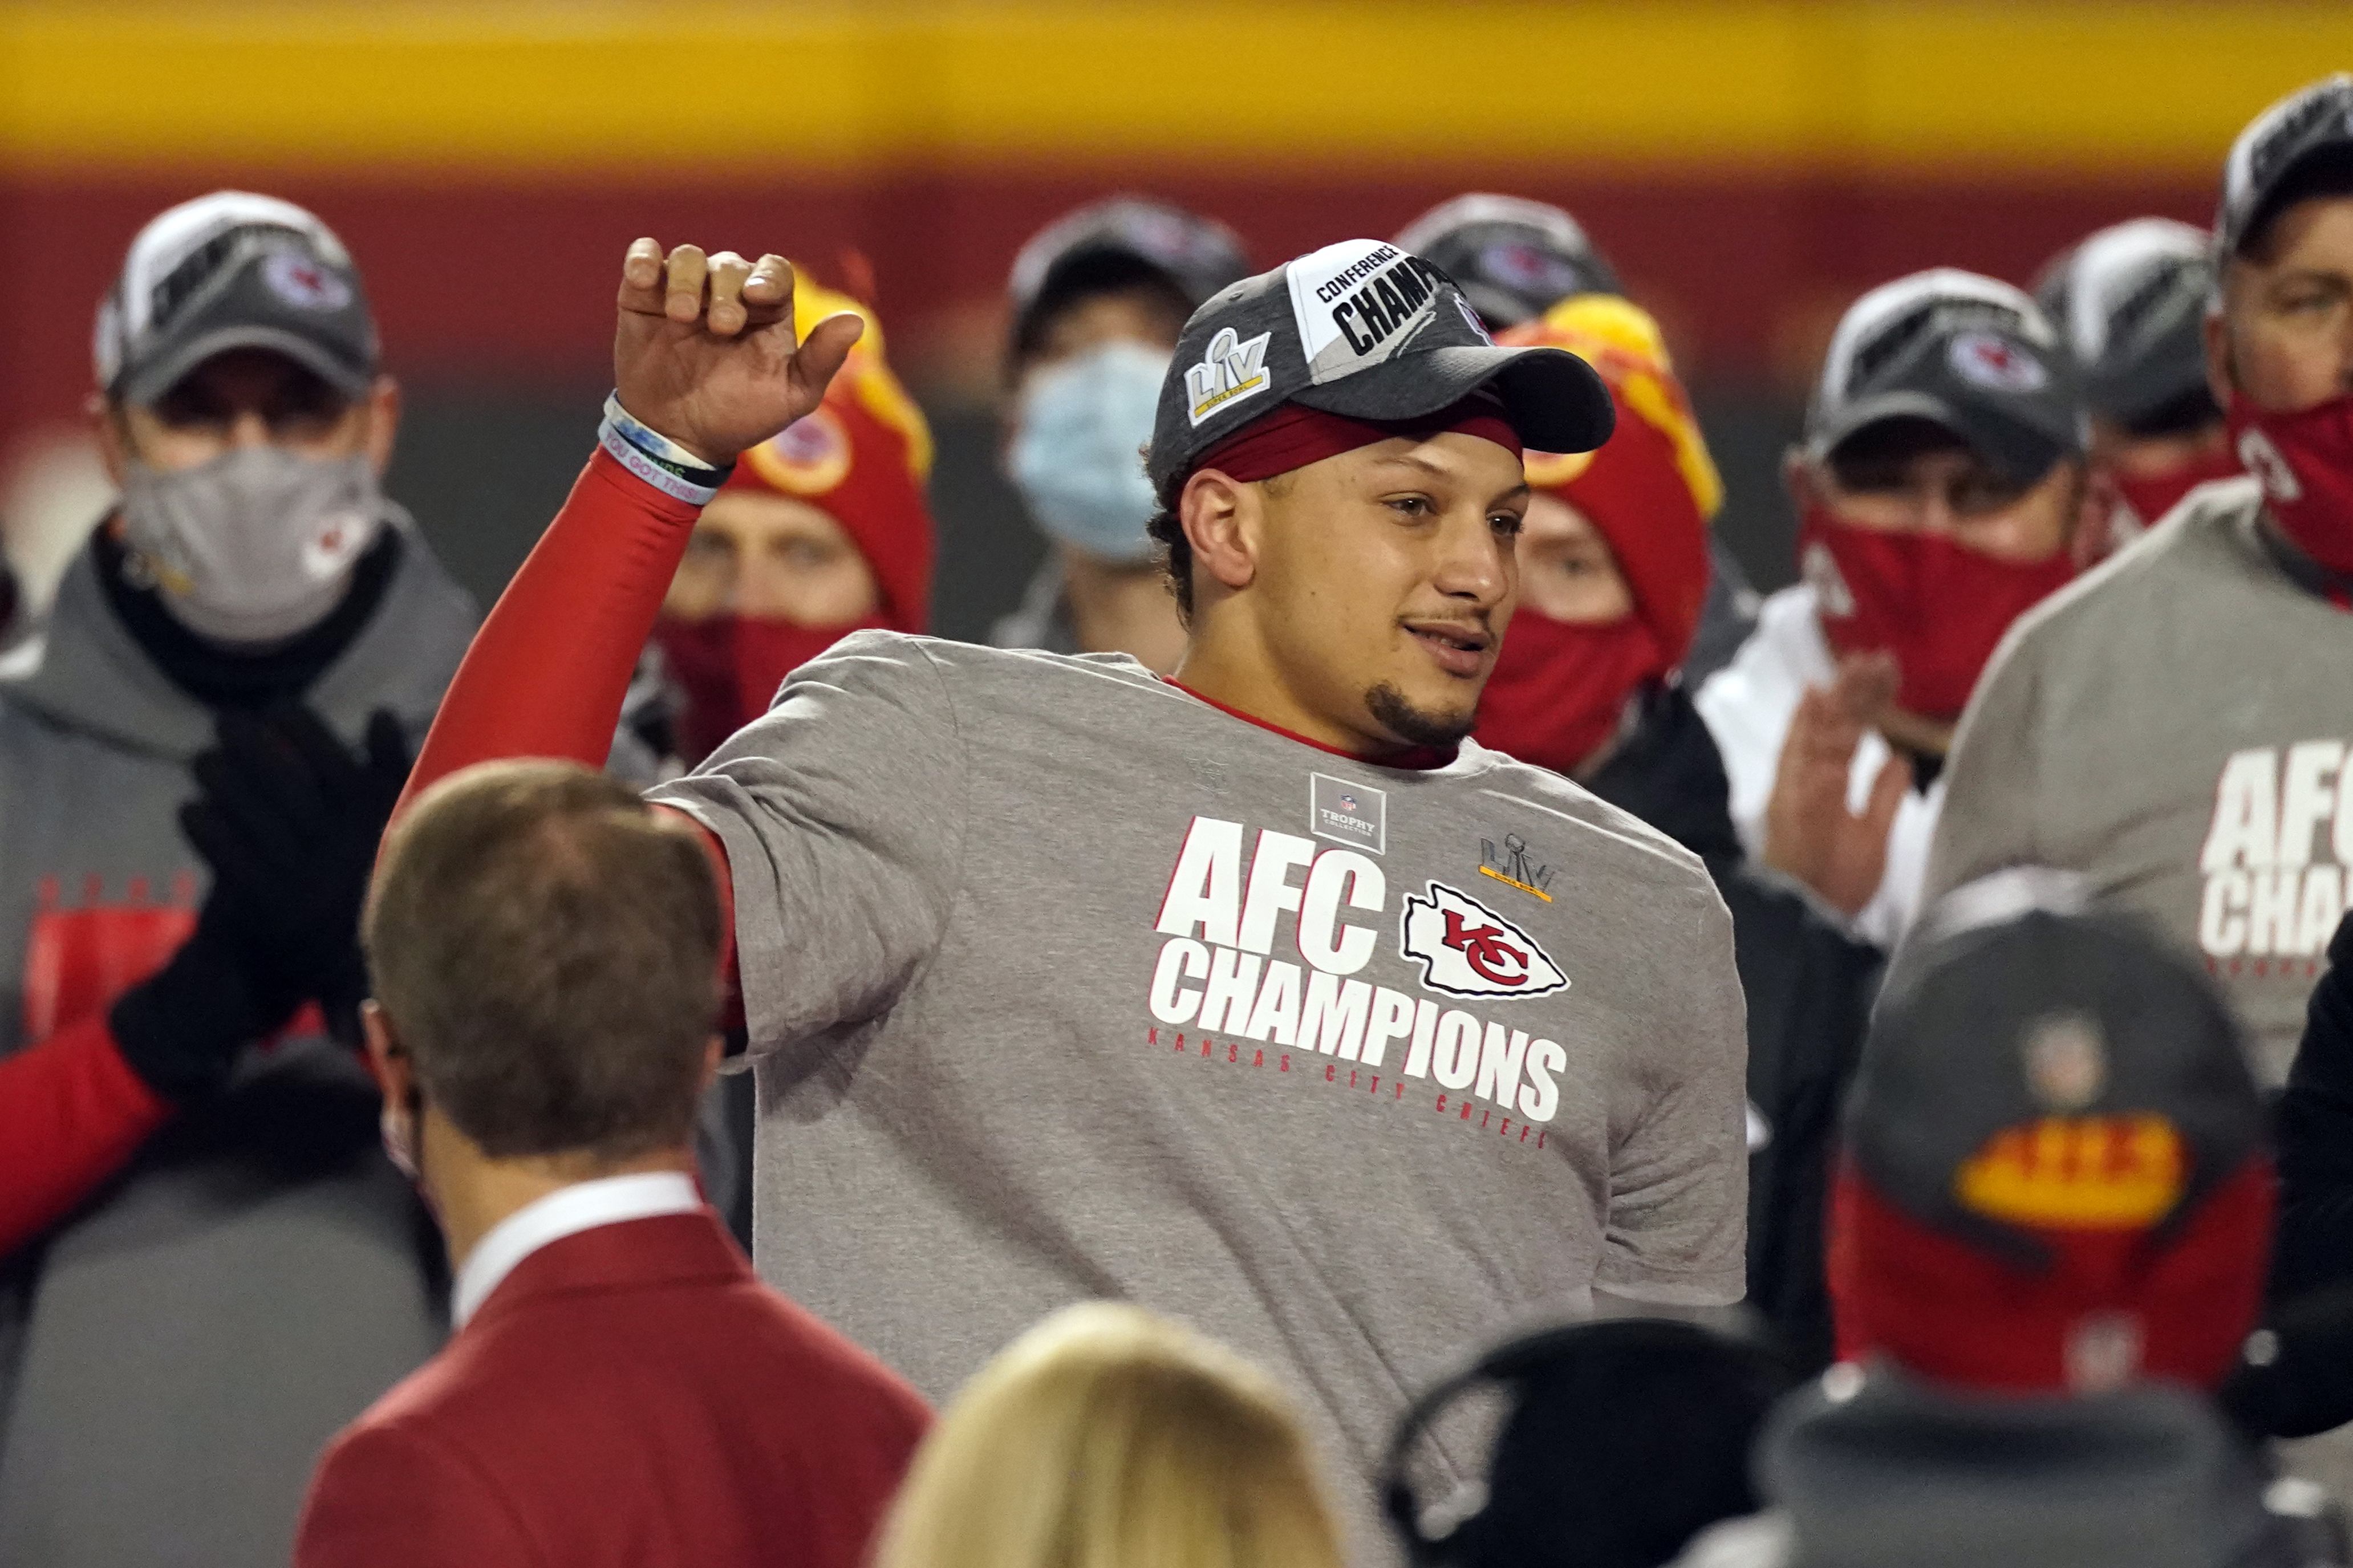 Kansas City Chiefs AFC Champions 2020 gear, hats and shirts you can buy  before Super Bowl 55 | Patrick Mahomes - cleveland.com